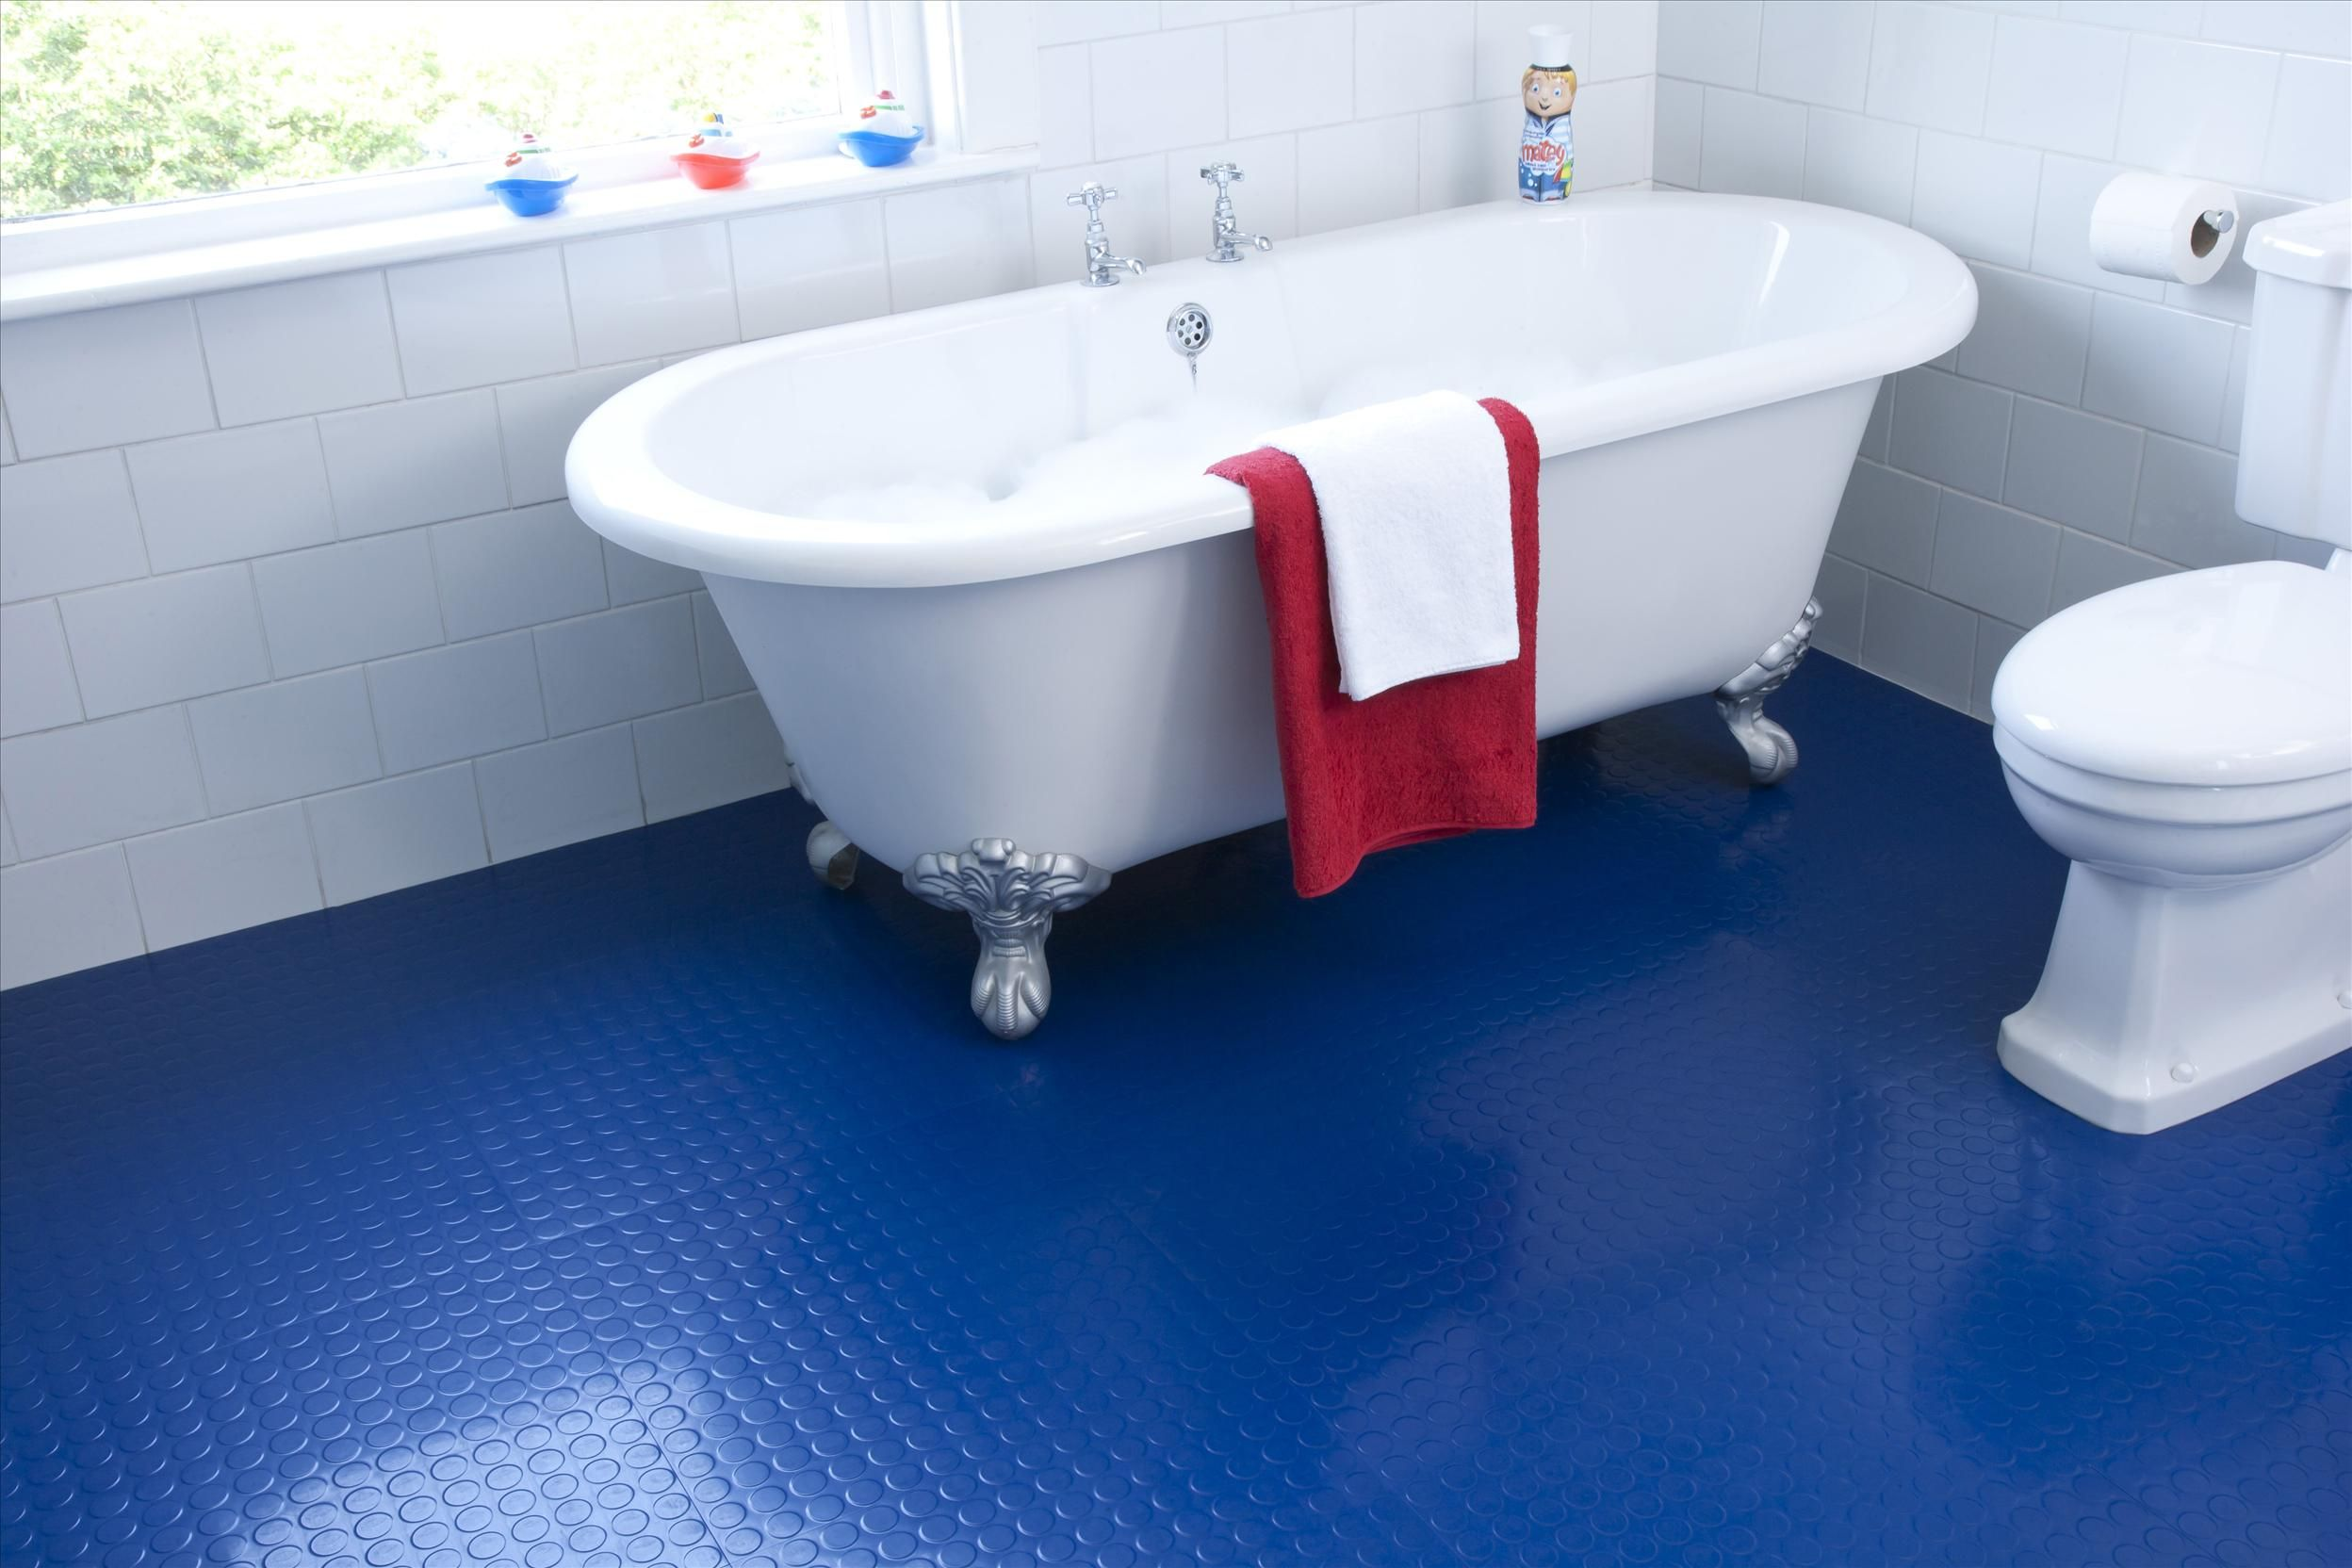 Bathroom flooring rubber tiles pinterdor pinterest rubber cool fancy ideas cool fancy blue rubber floor tile in minimalist bathroom image id 32108 giesendesign dailygadgetfo Image collections